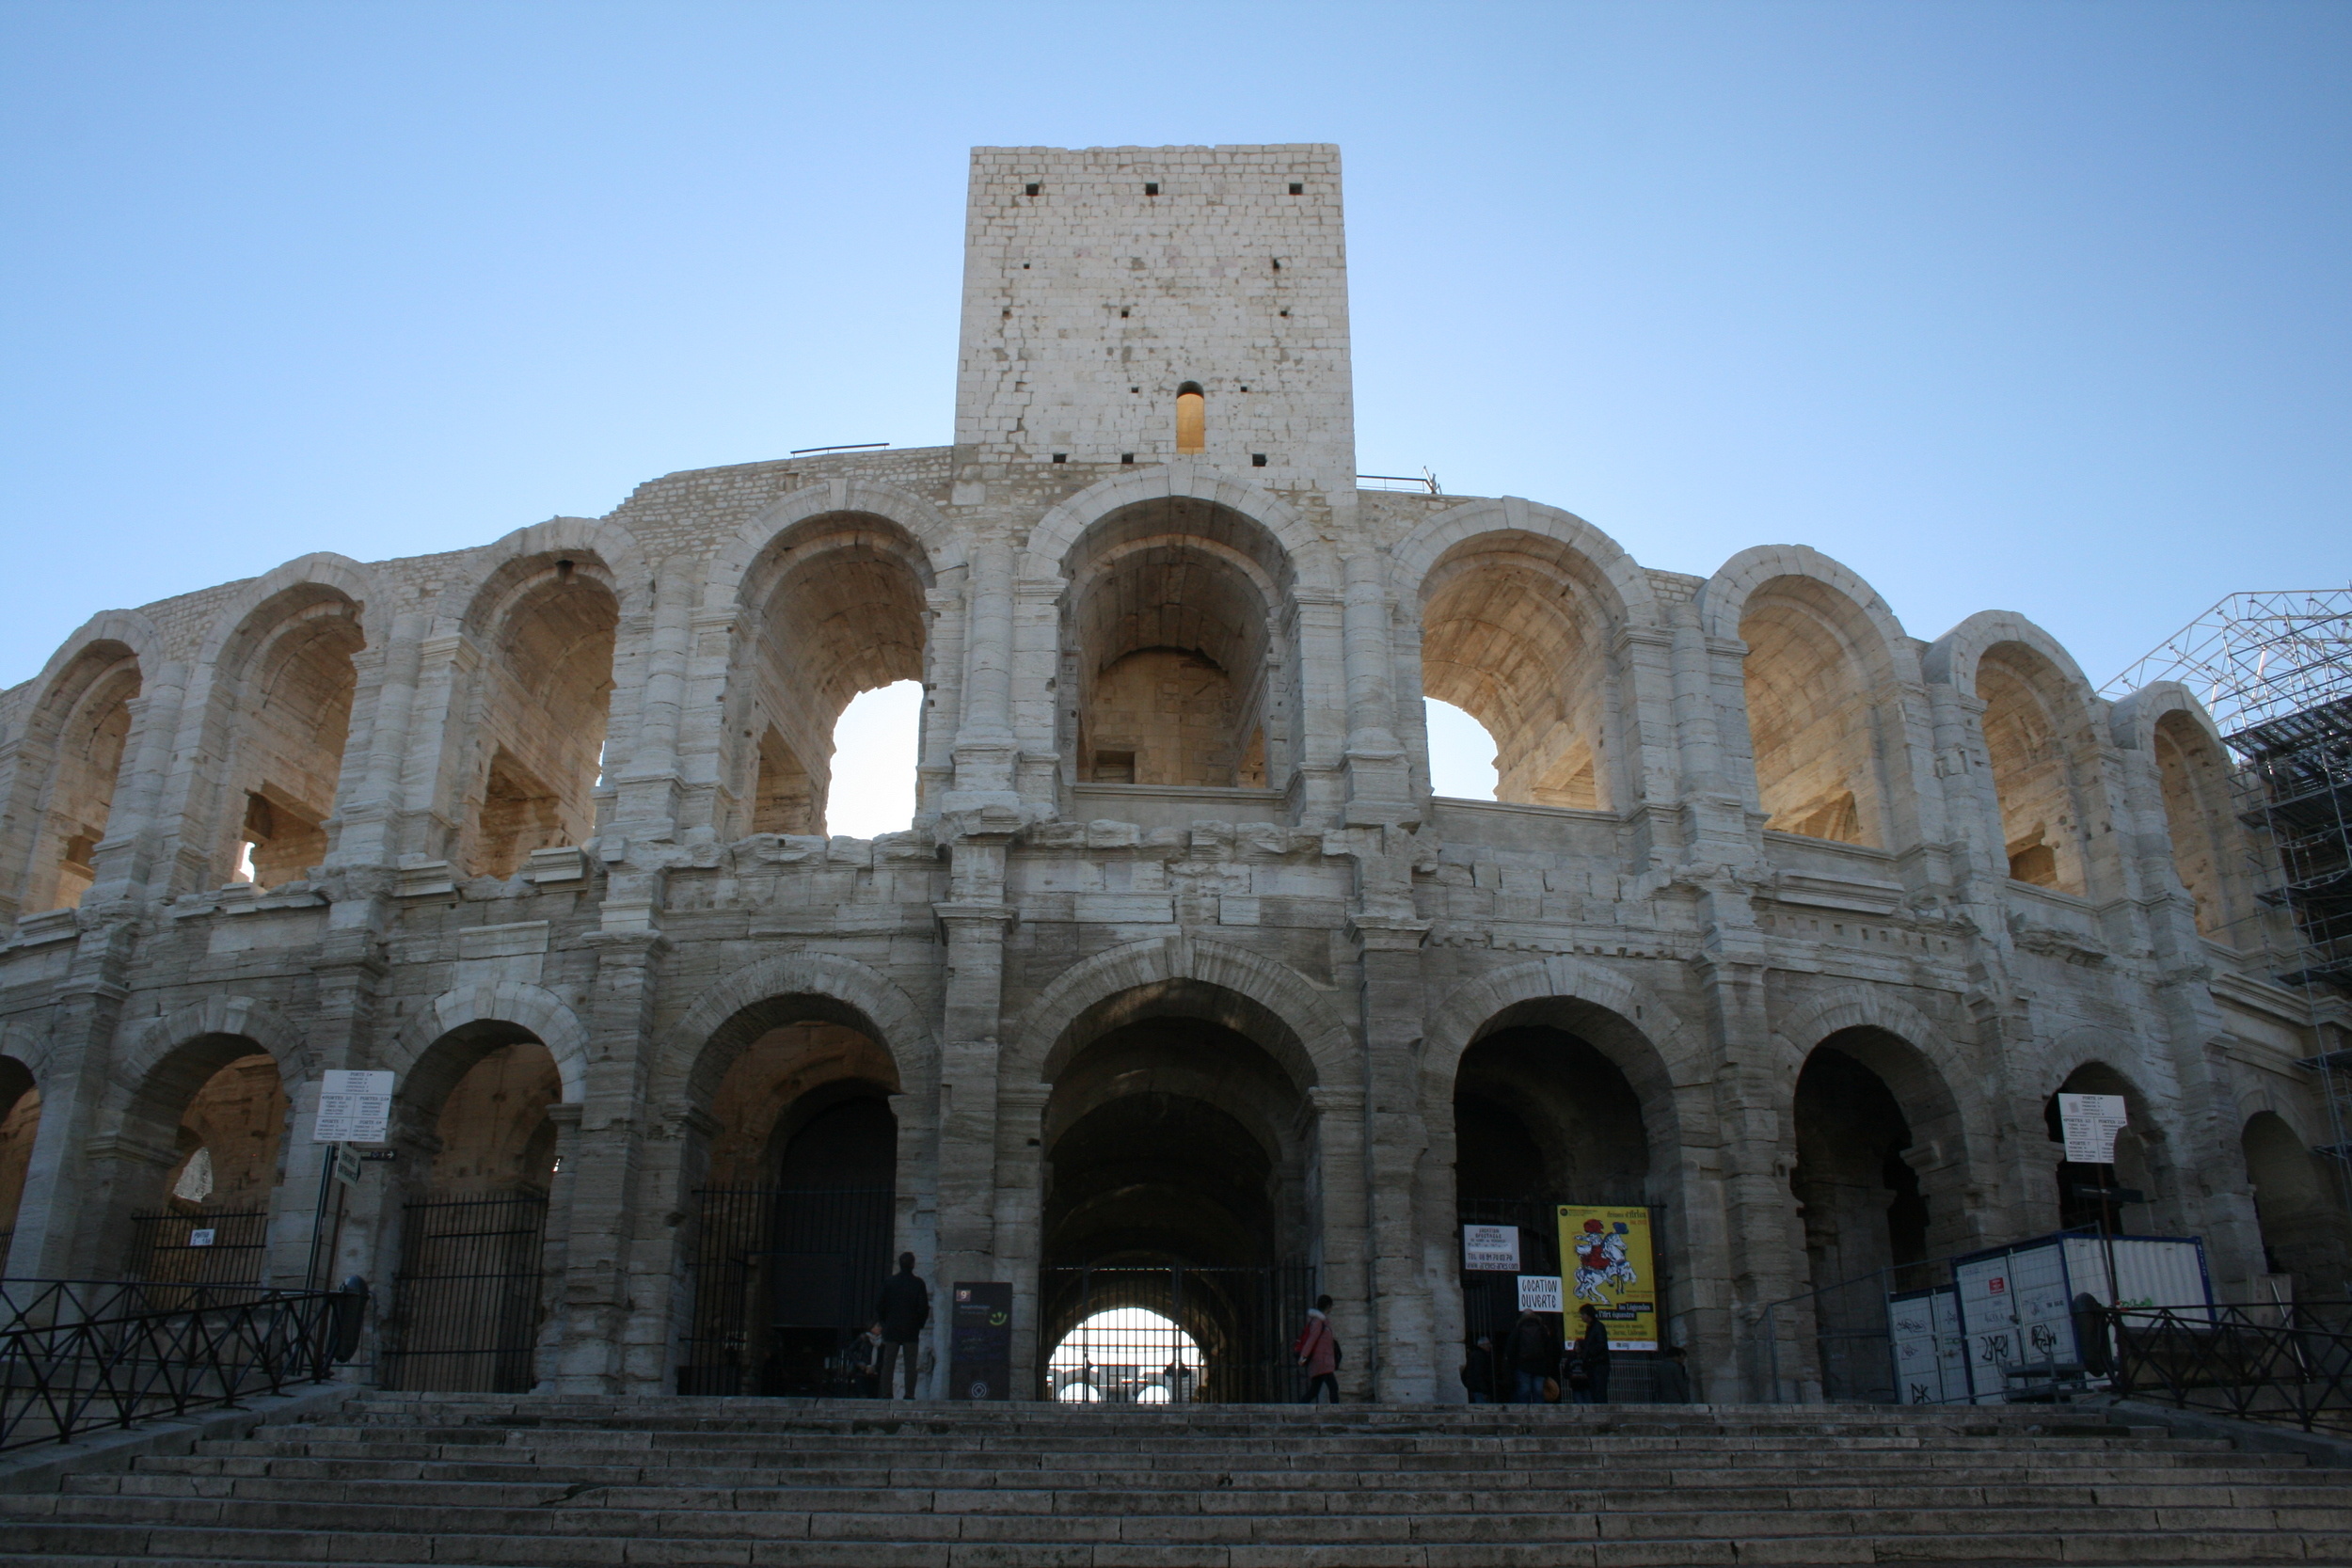 Rome's coliseum is to Arles' amphitheater as a football stadium is to a basketball court. But this one is better preserved than its more famous counterpart.